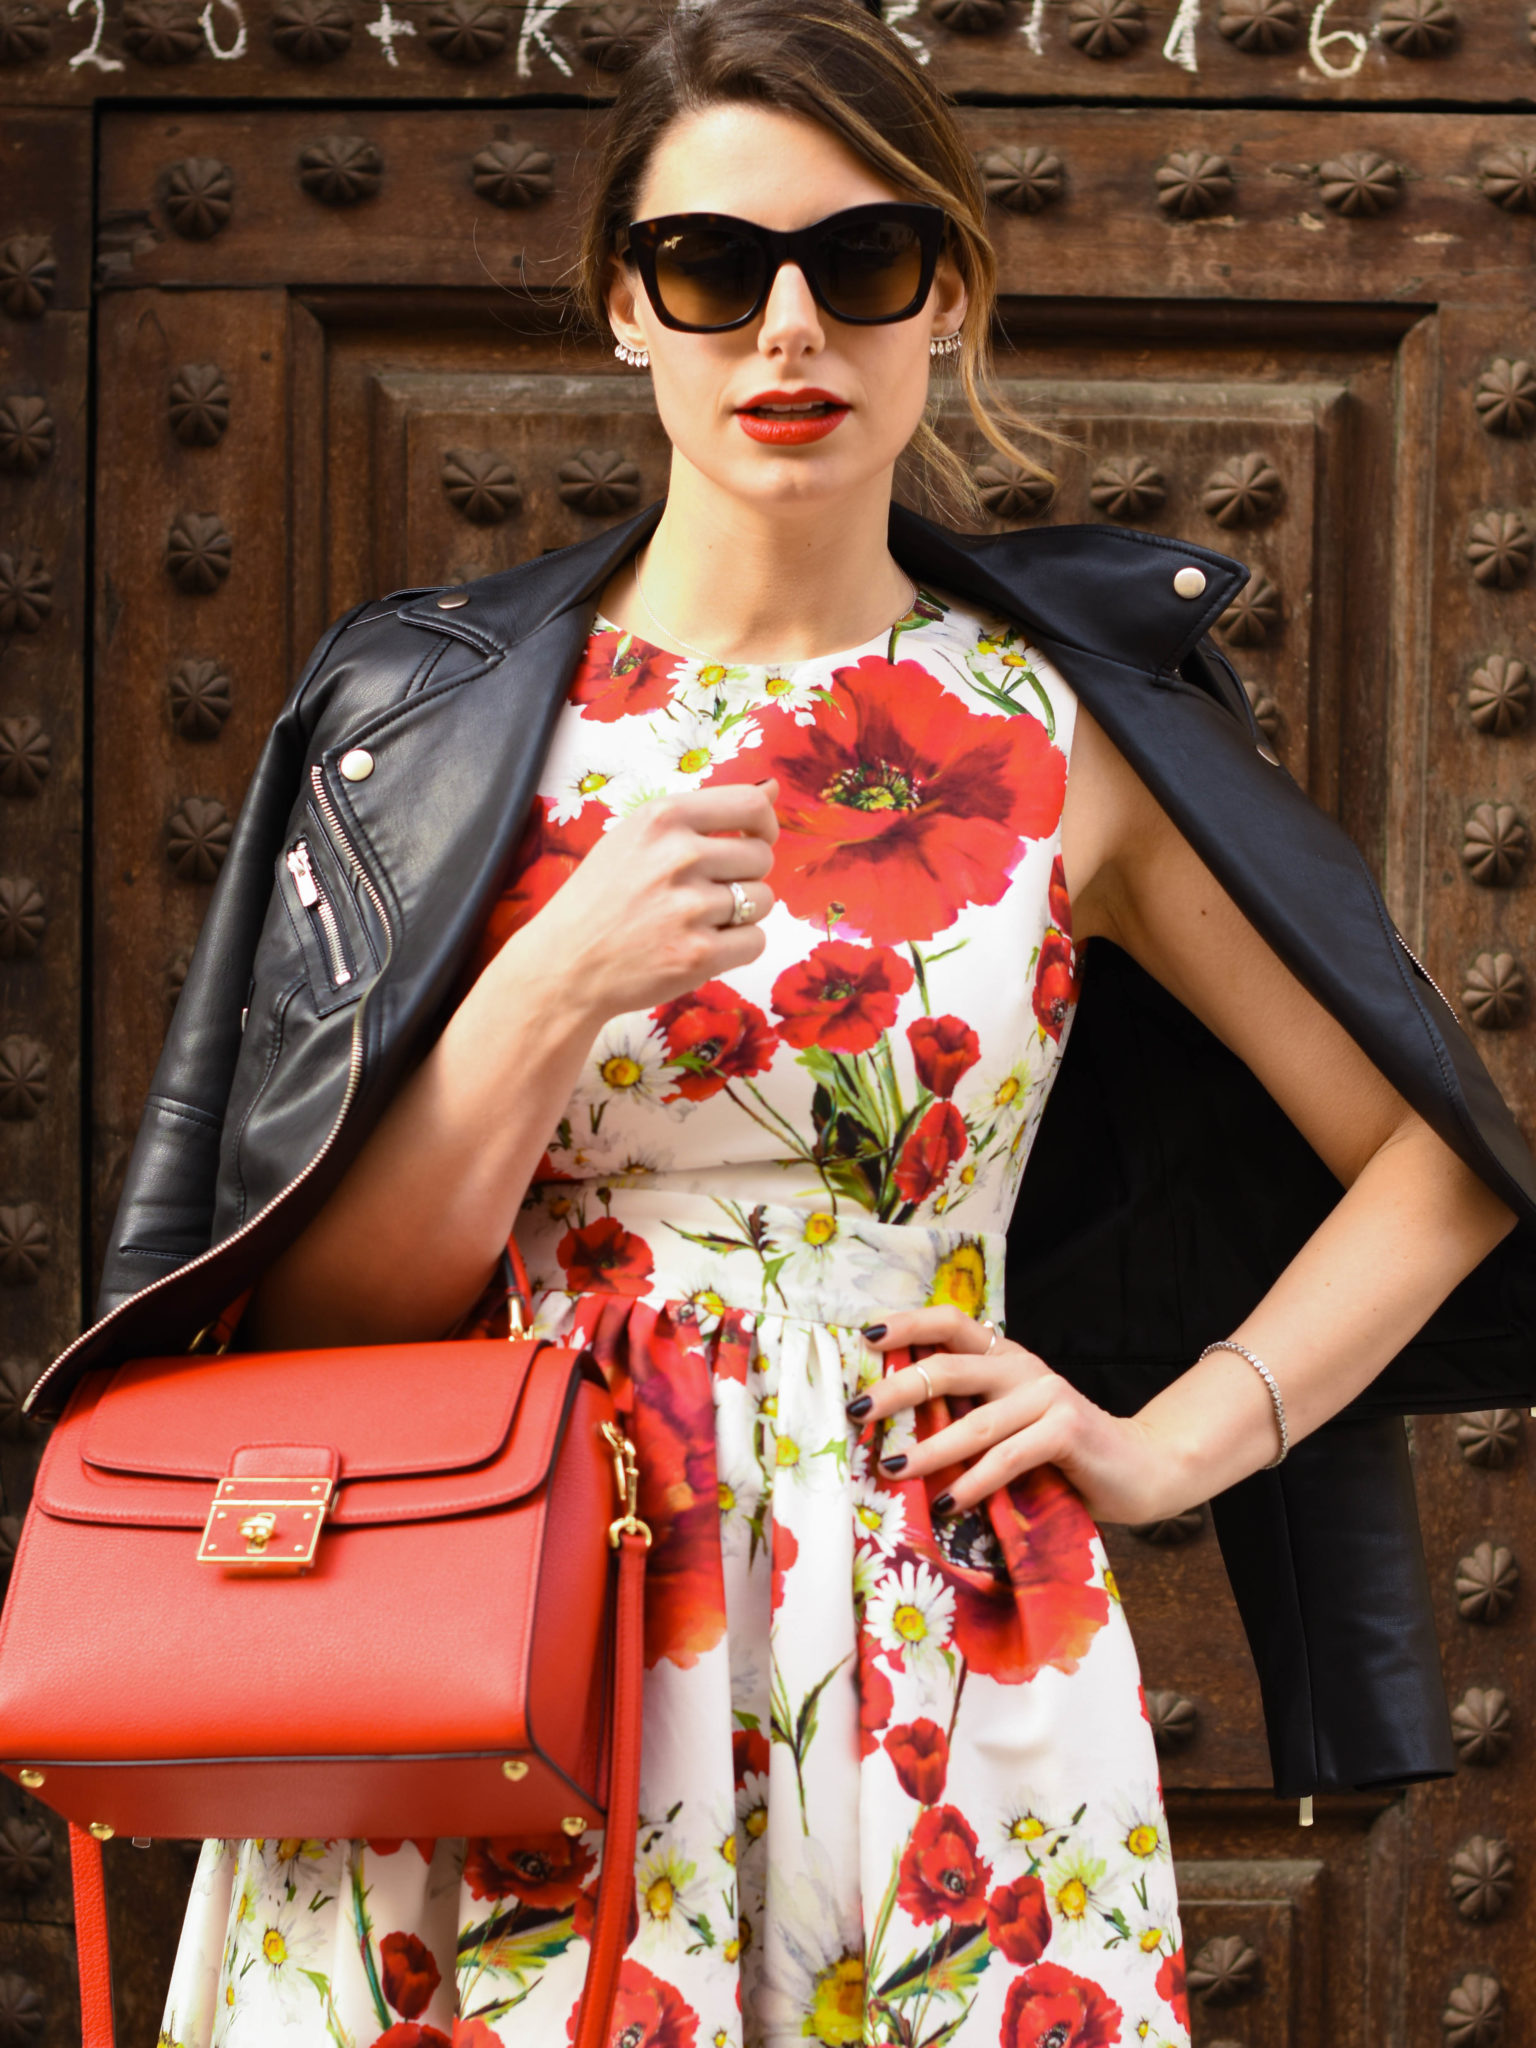 Giulia De Martin behindmyglasses.com sunglasses Maui Jim eyewear collection Dolce & Gabbana bag dress Valentino rockstud pumps red mango leather jacket-4